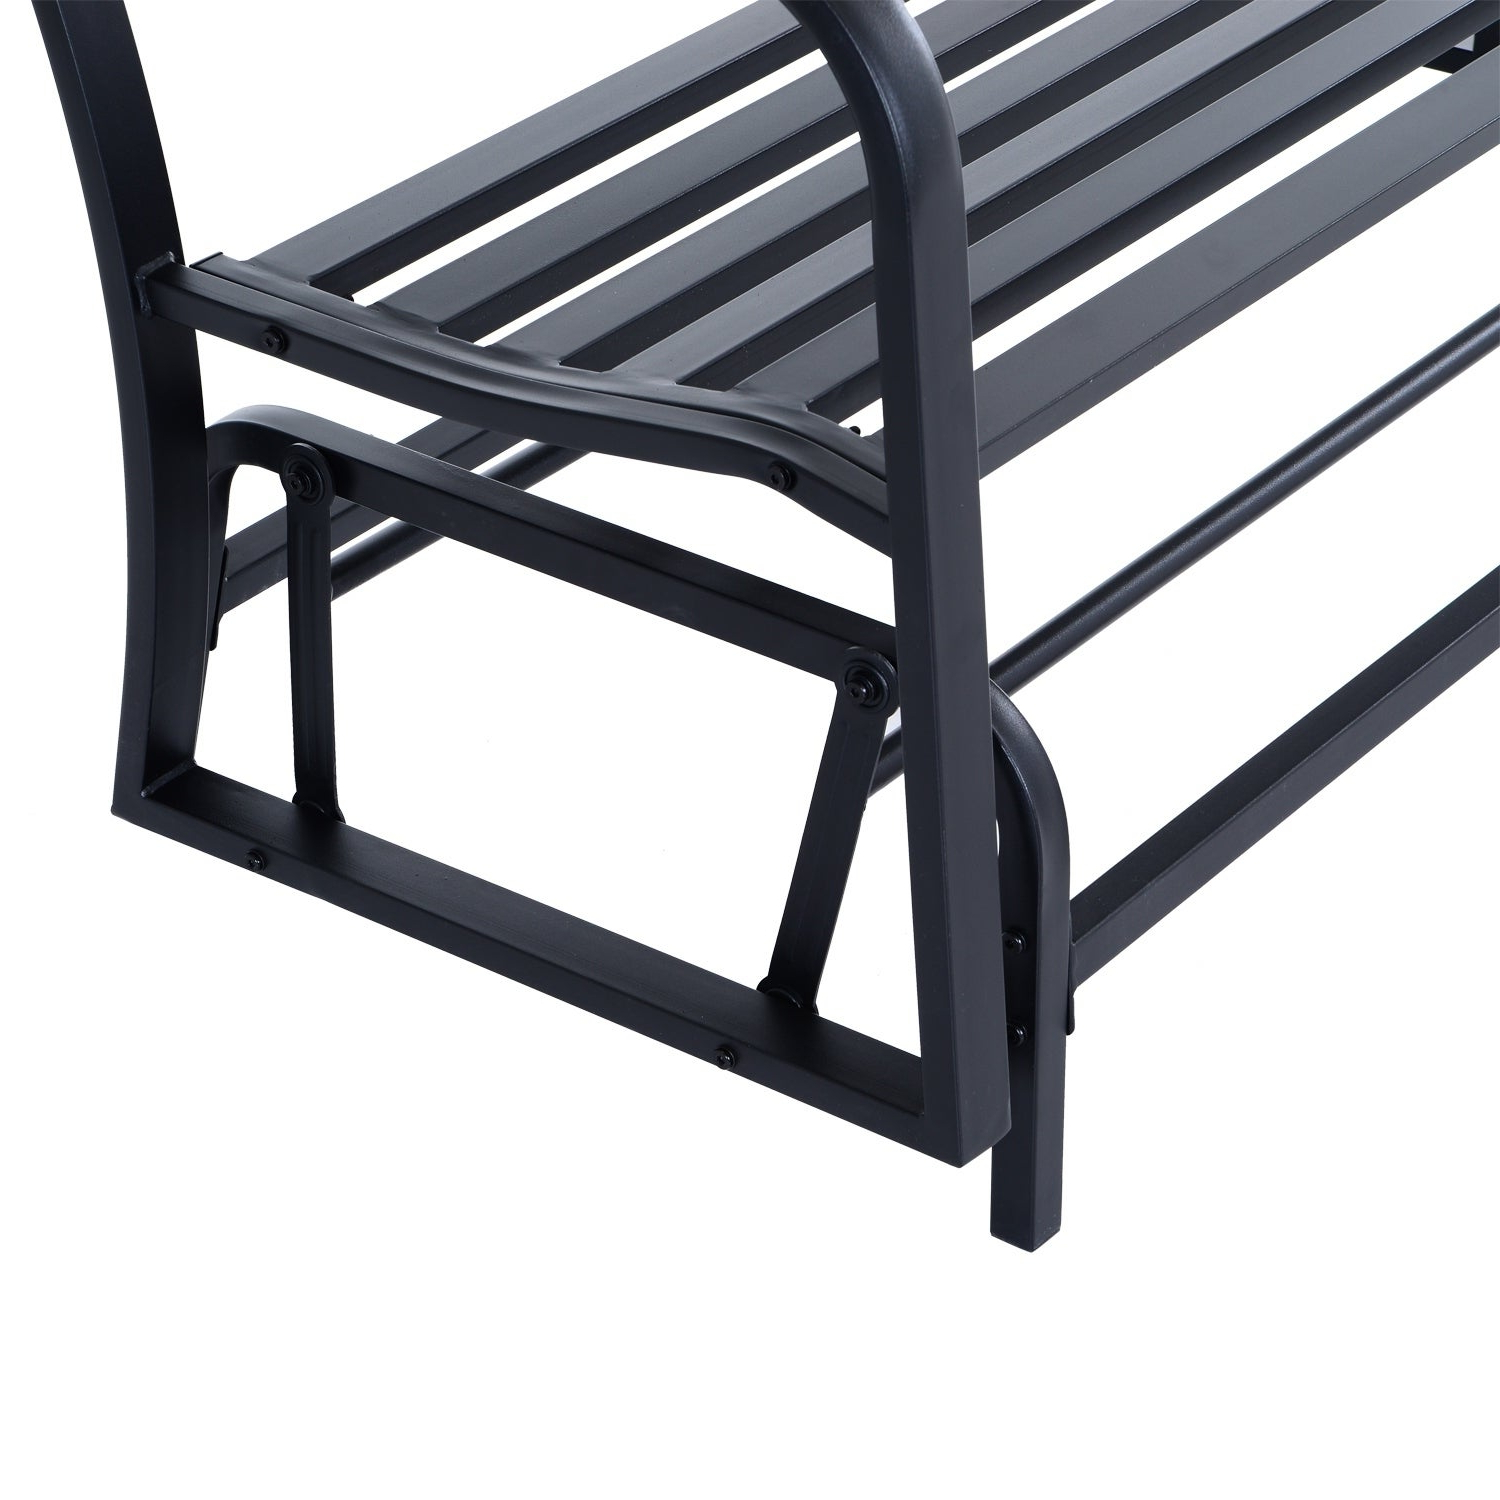 Recent Outsunny 50 Inch Outdoor Steel Patio Swing Glider Bench – Black Throughout Outdoor Steel Patio Swing Glider Benches (View 19 of 25)